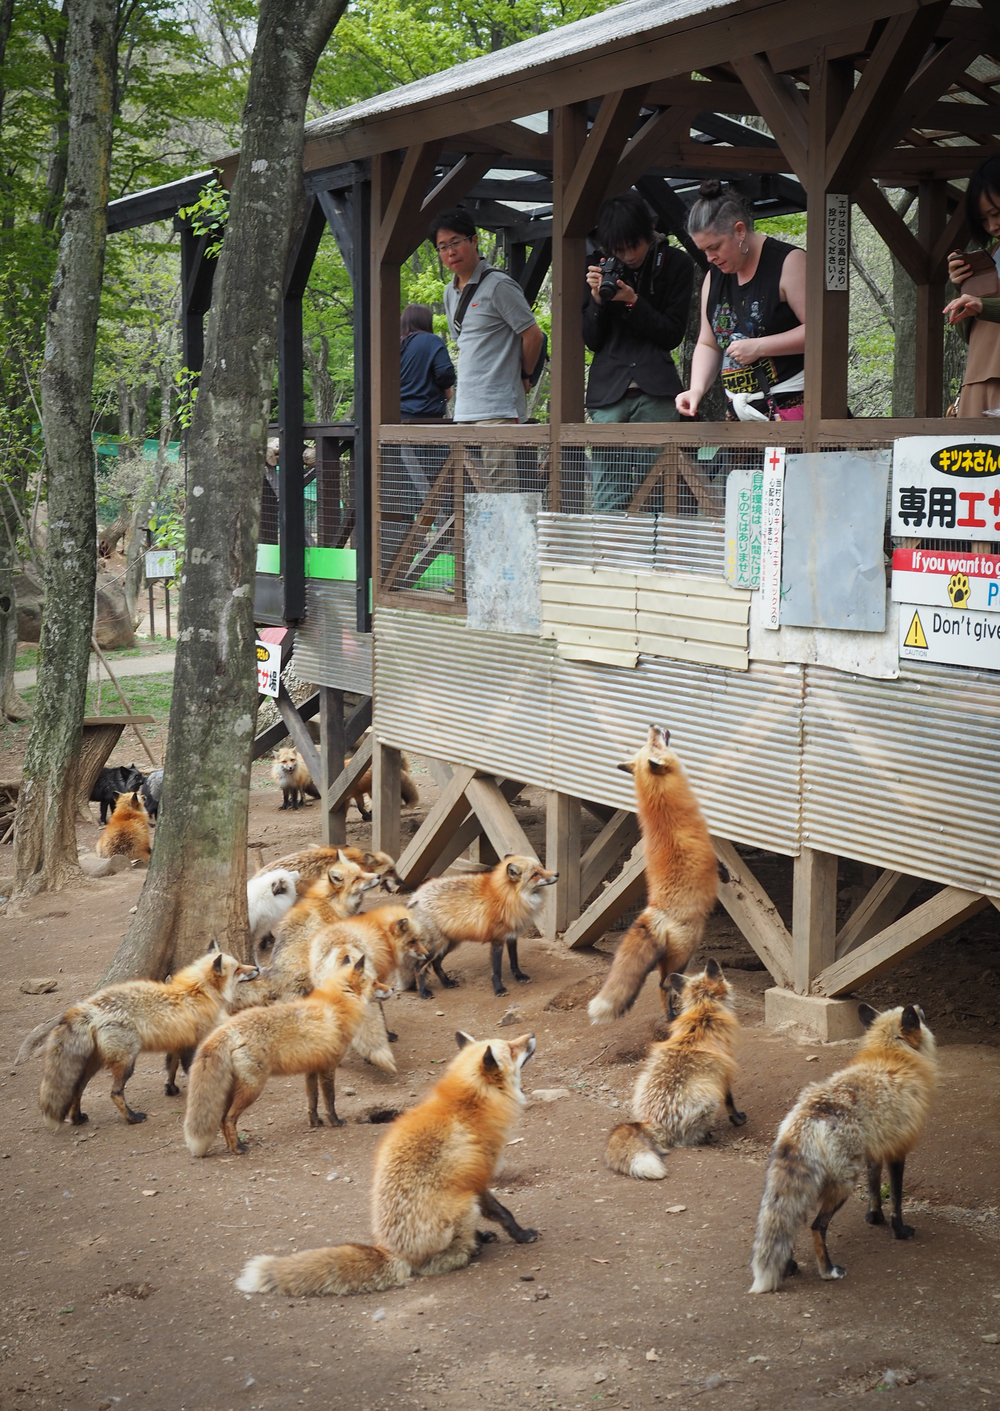 I'm feeding the foxes, I want to be friends.